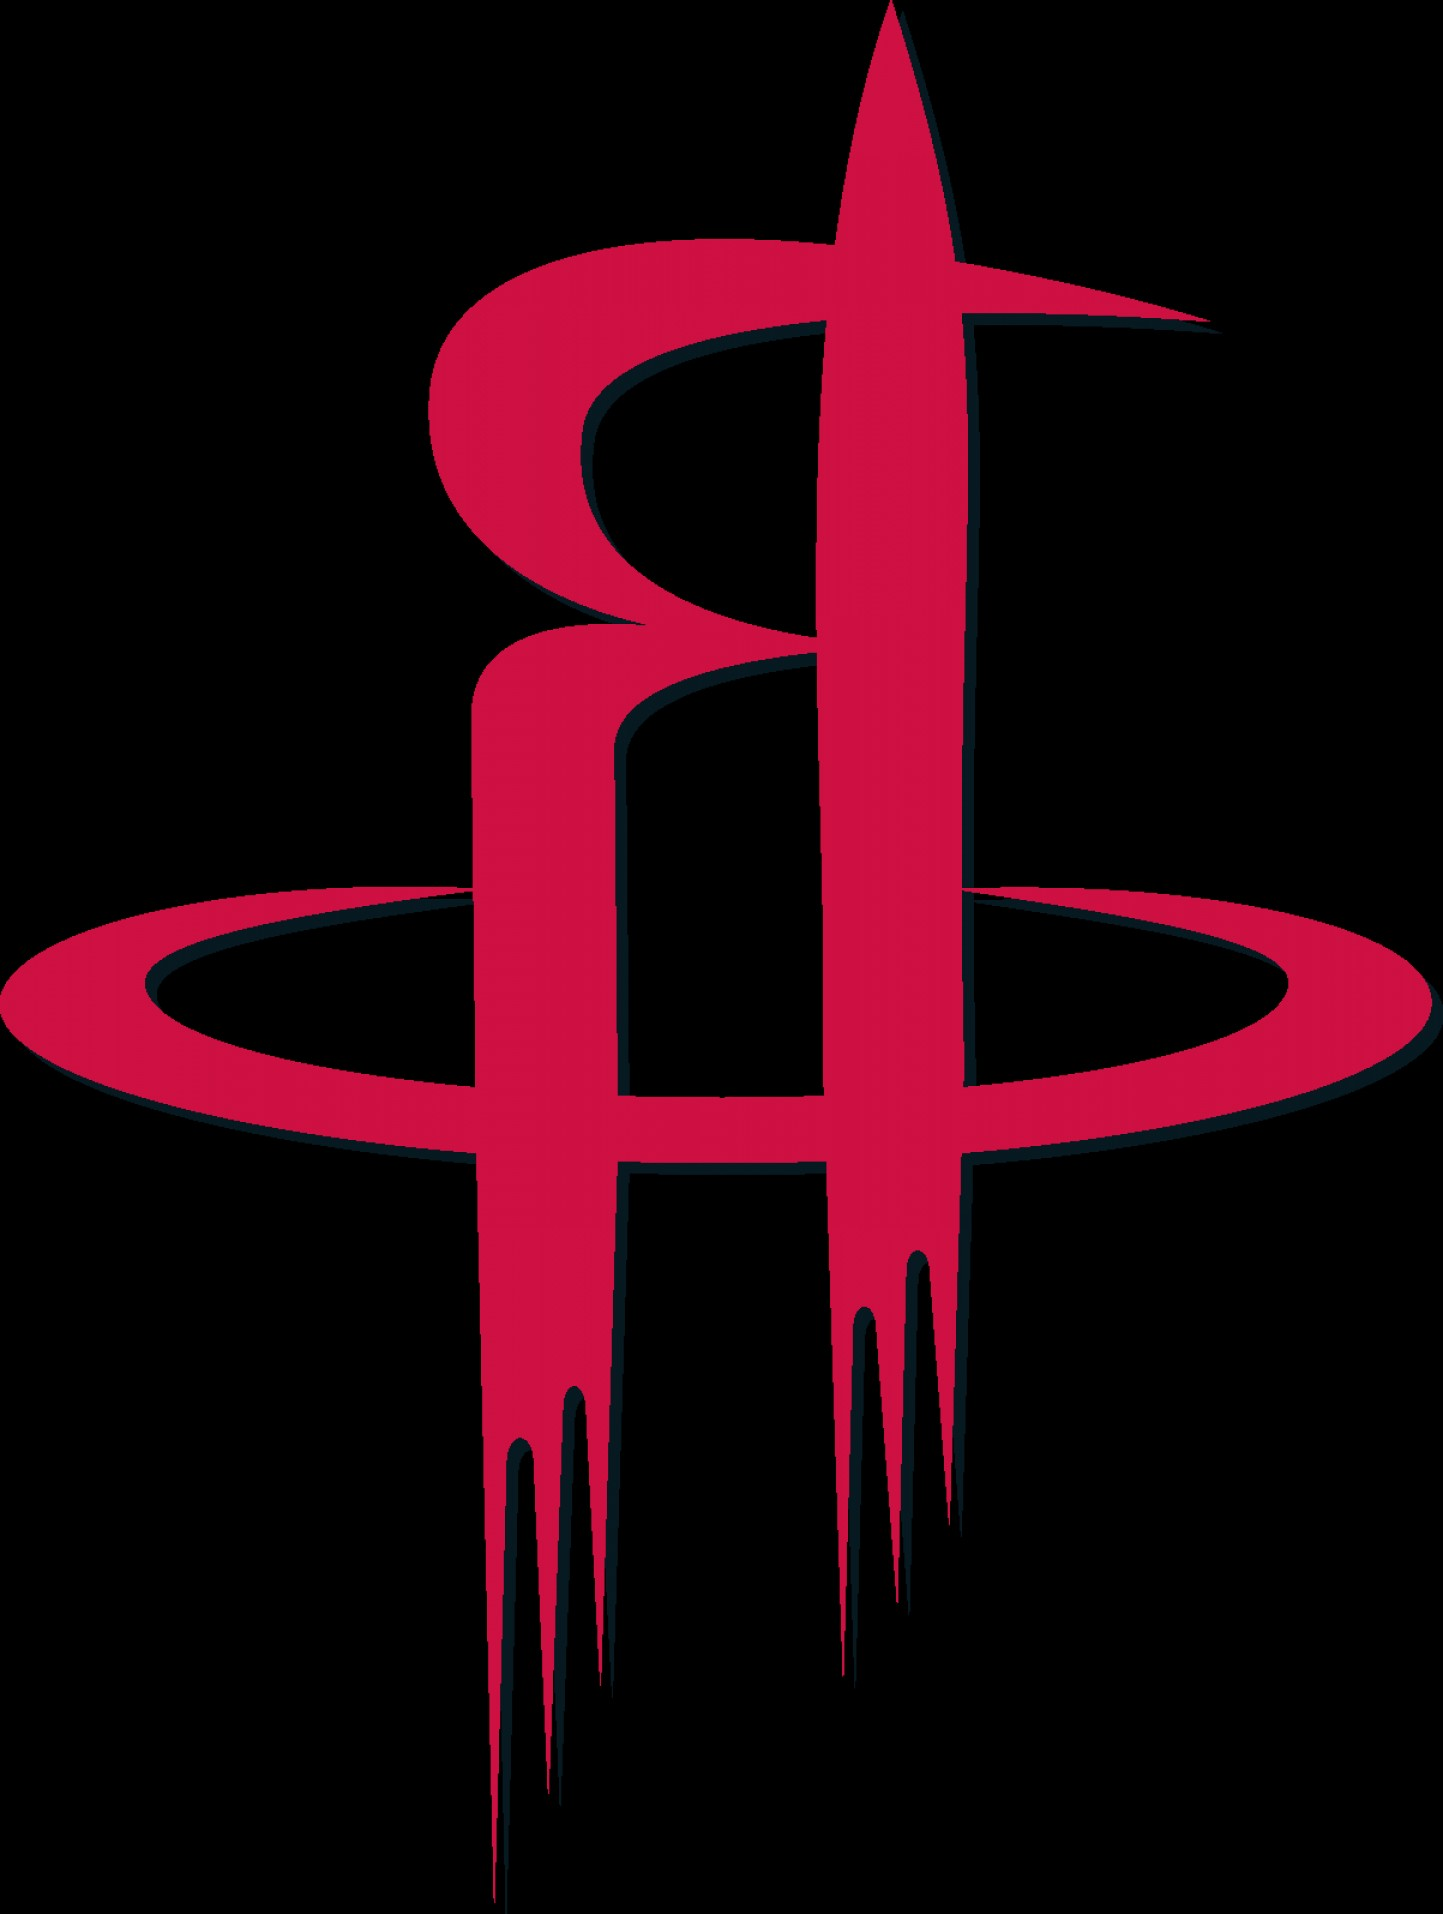 Vector NBA LogoArt: Nba Houston Rockets Logo Eps File